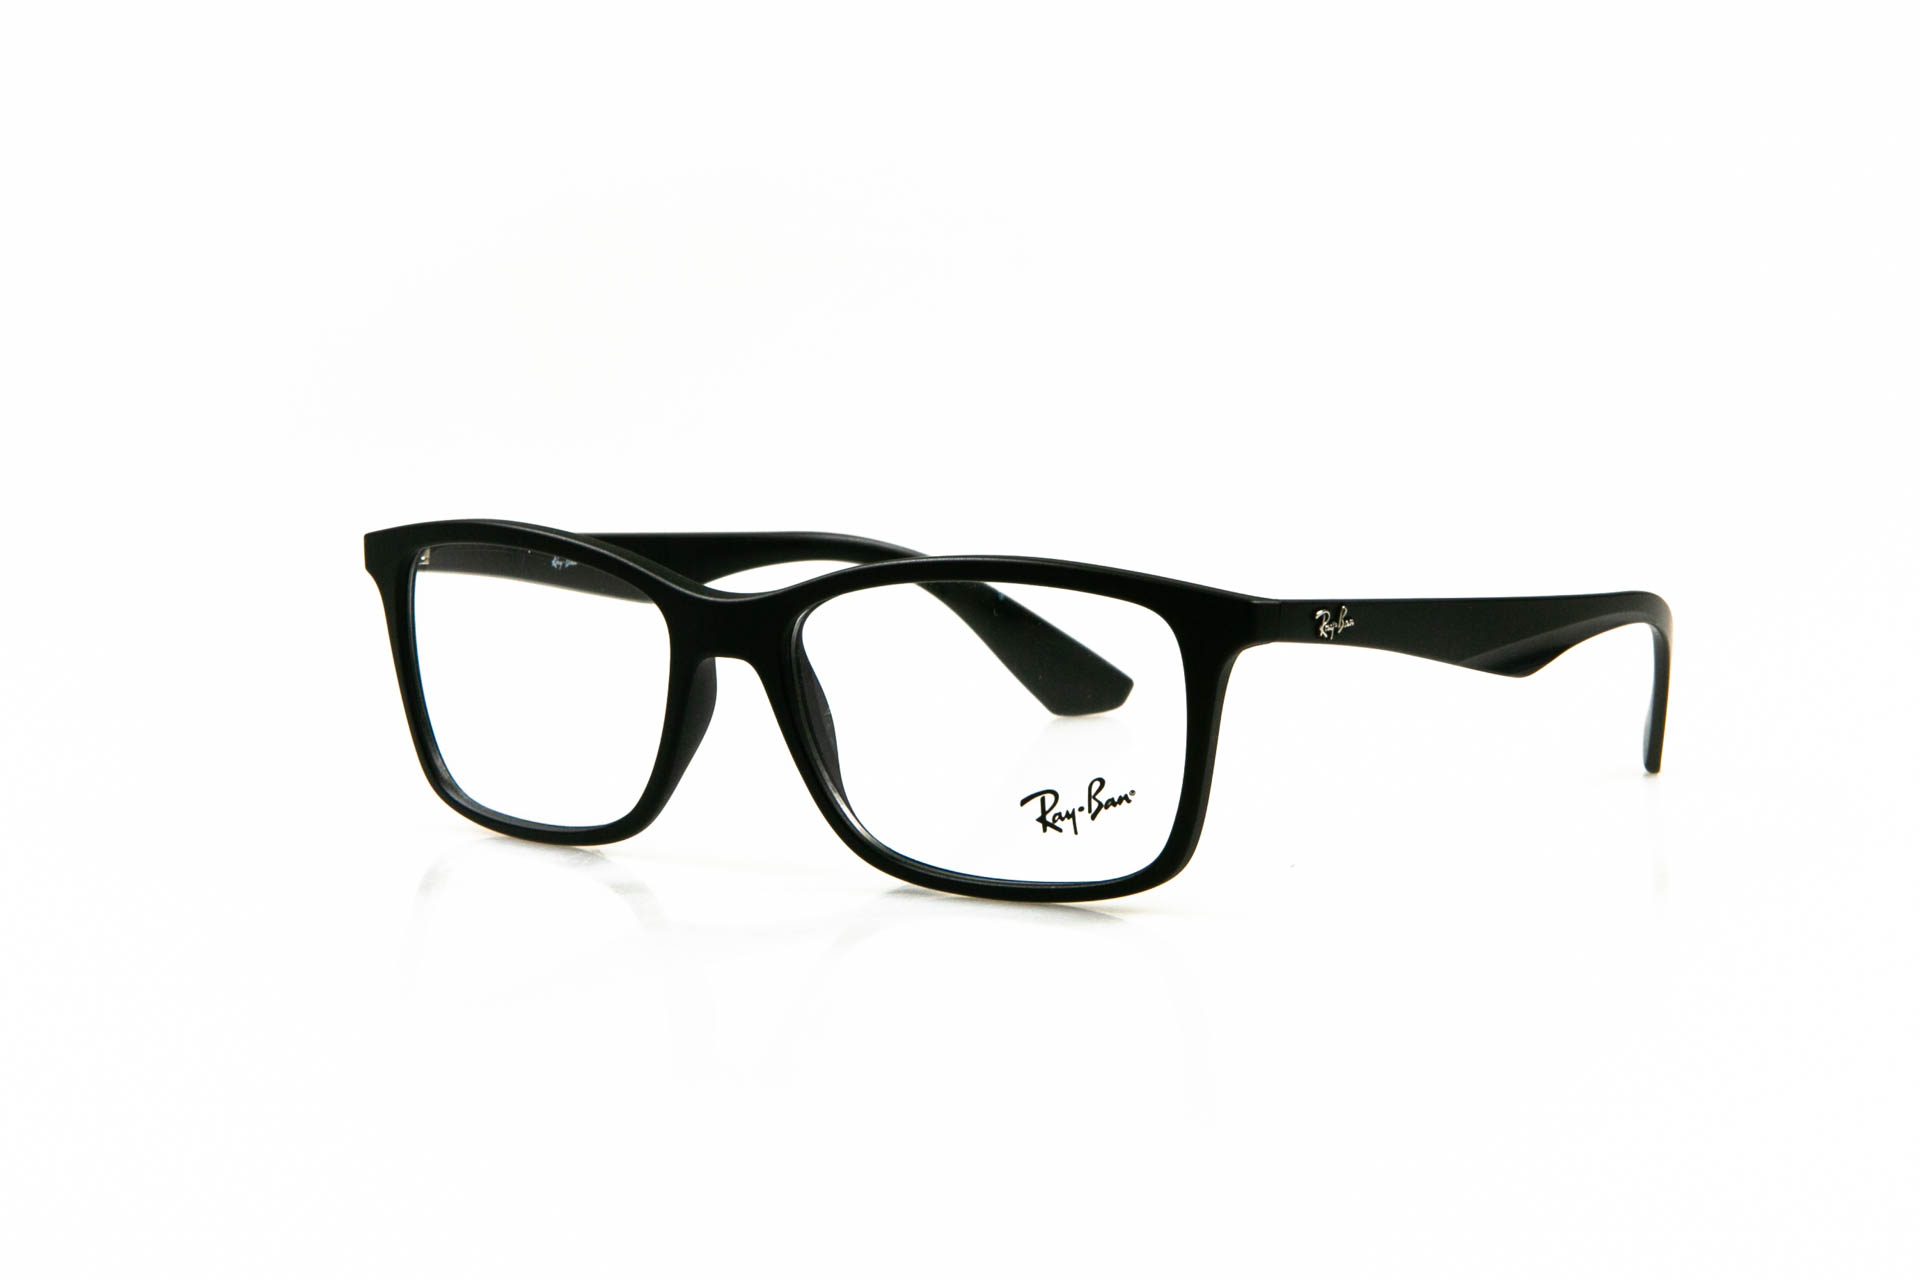 c9a7f7bbce Ray-Ban RB 7047 5196